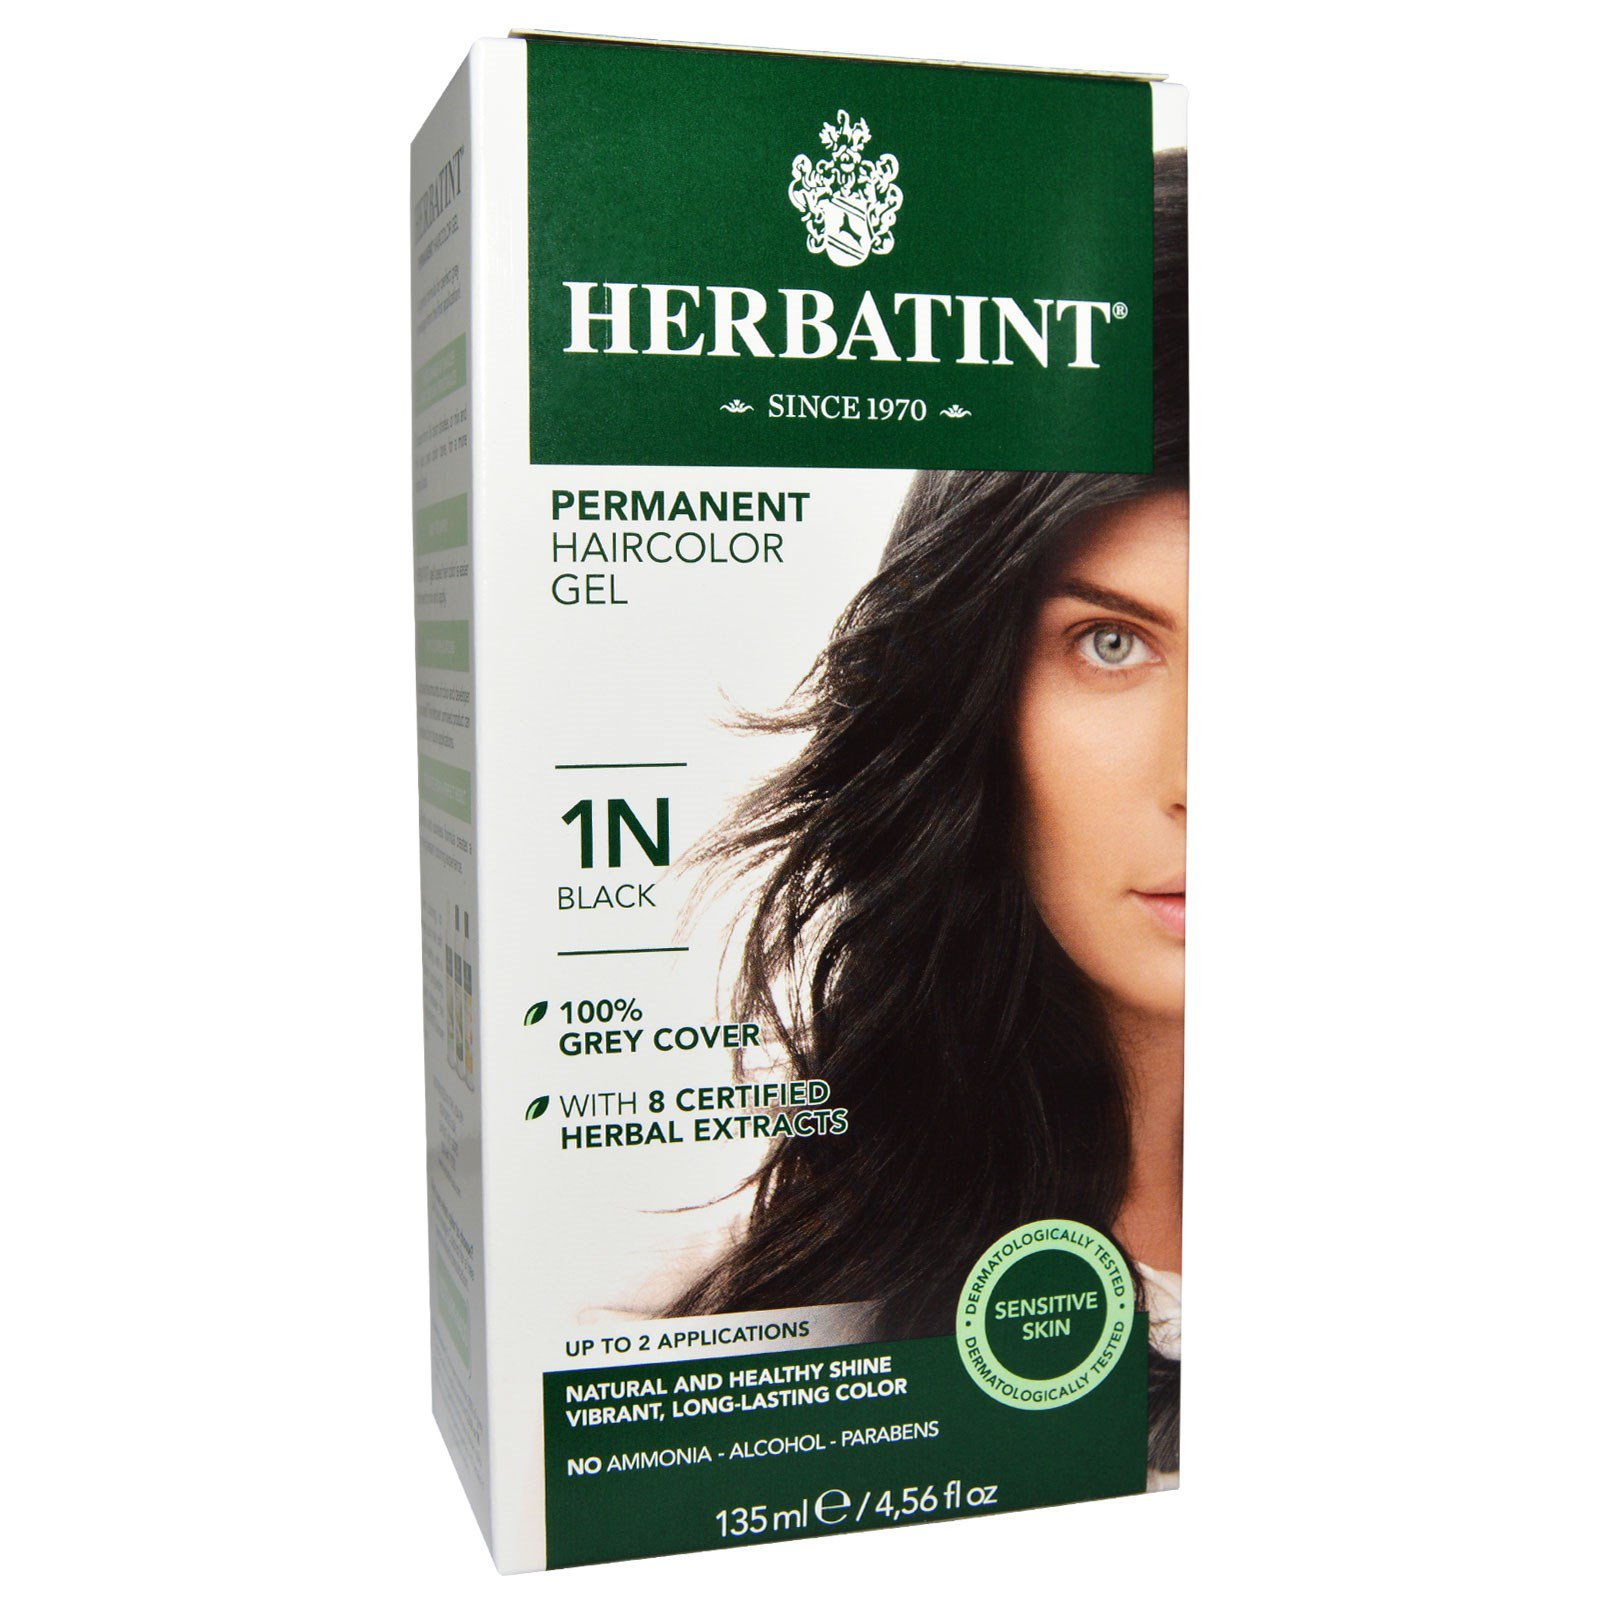 Herbatint Permanent Haircolor Gel 1n Black 456 Fl Oz 135 Ml